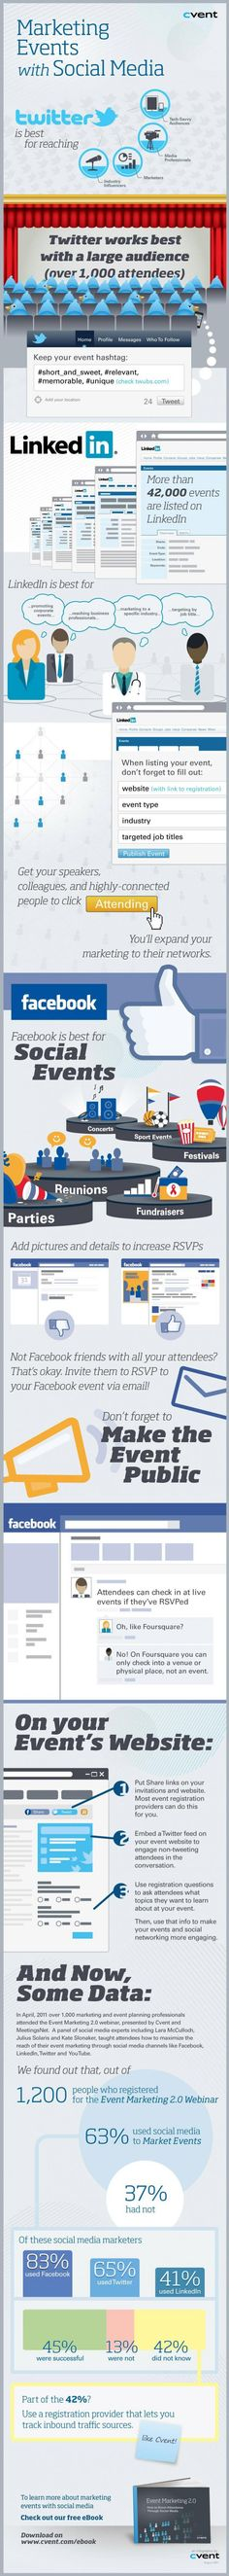 Marketing Events with Social Media: How to Boost Attendance Through Social Media Event marketing